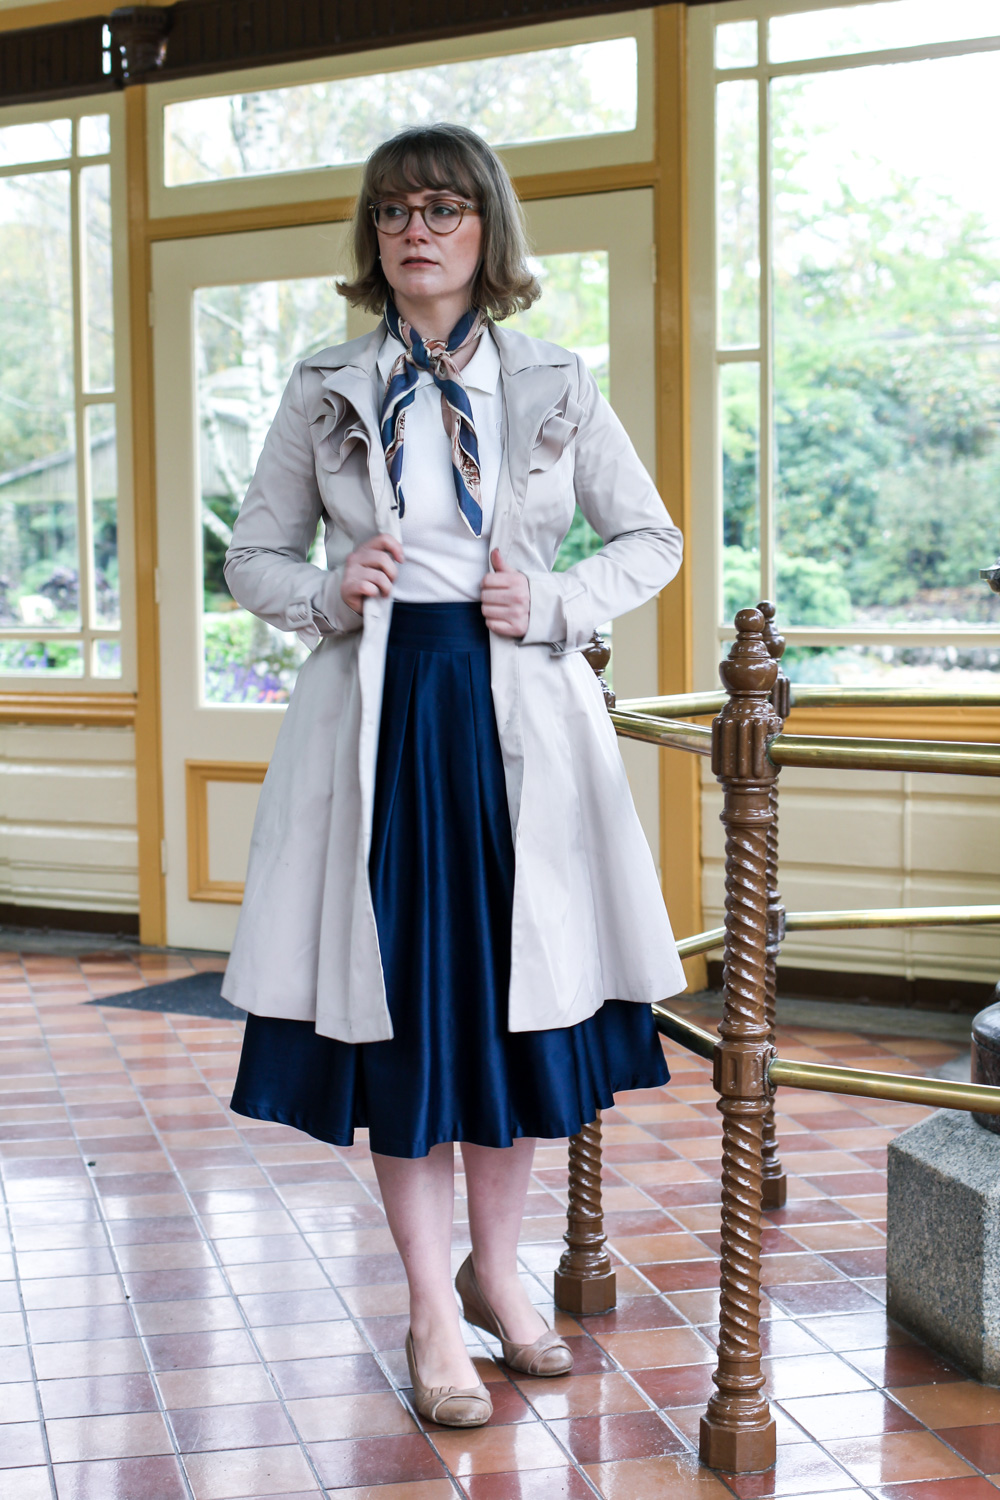 Liana of @findingfemme wears navy midi skirt from Review Australia, trench and necktie in Ballarat